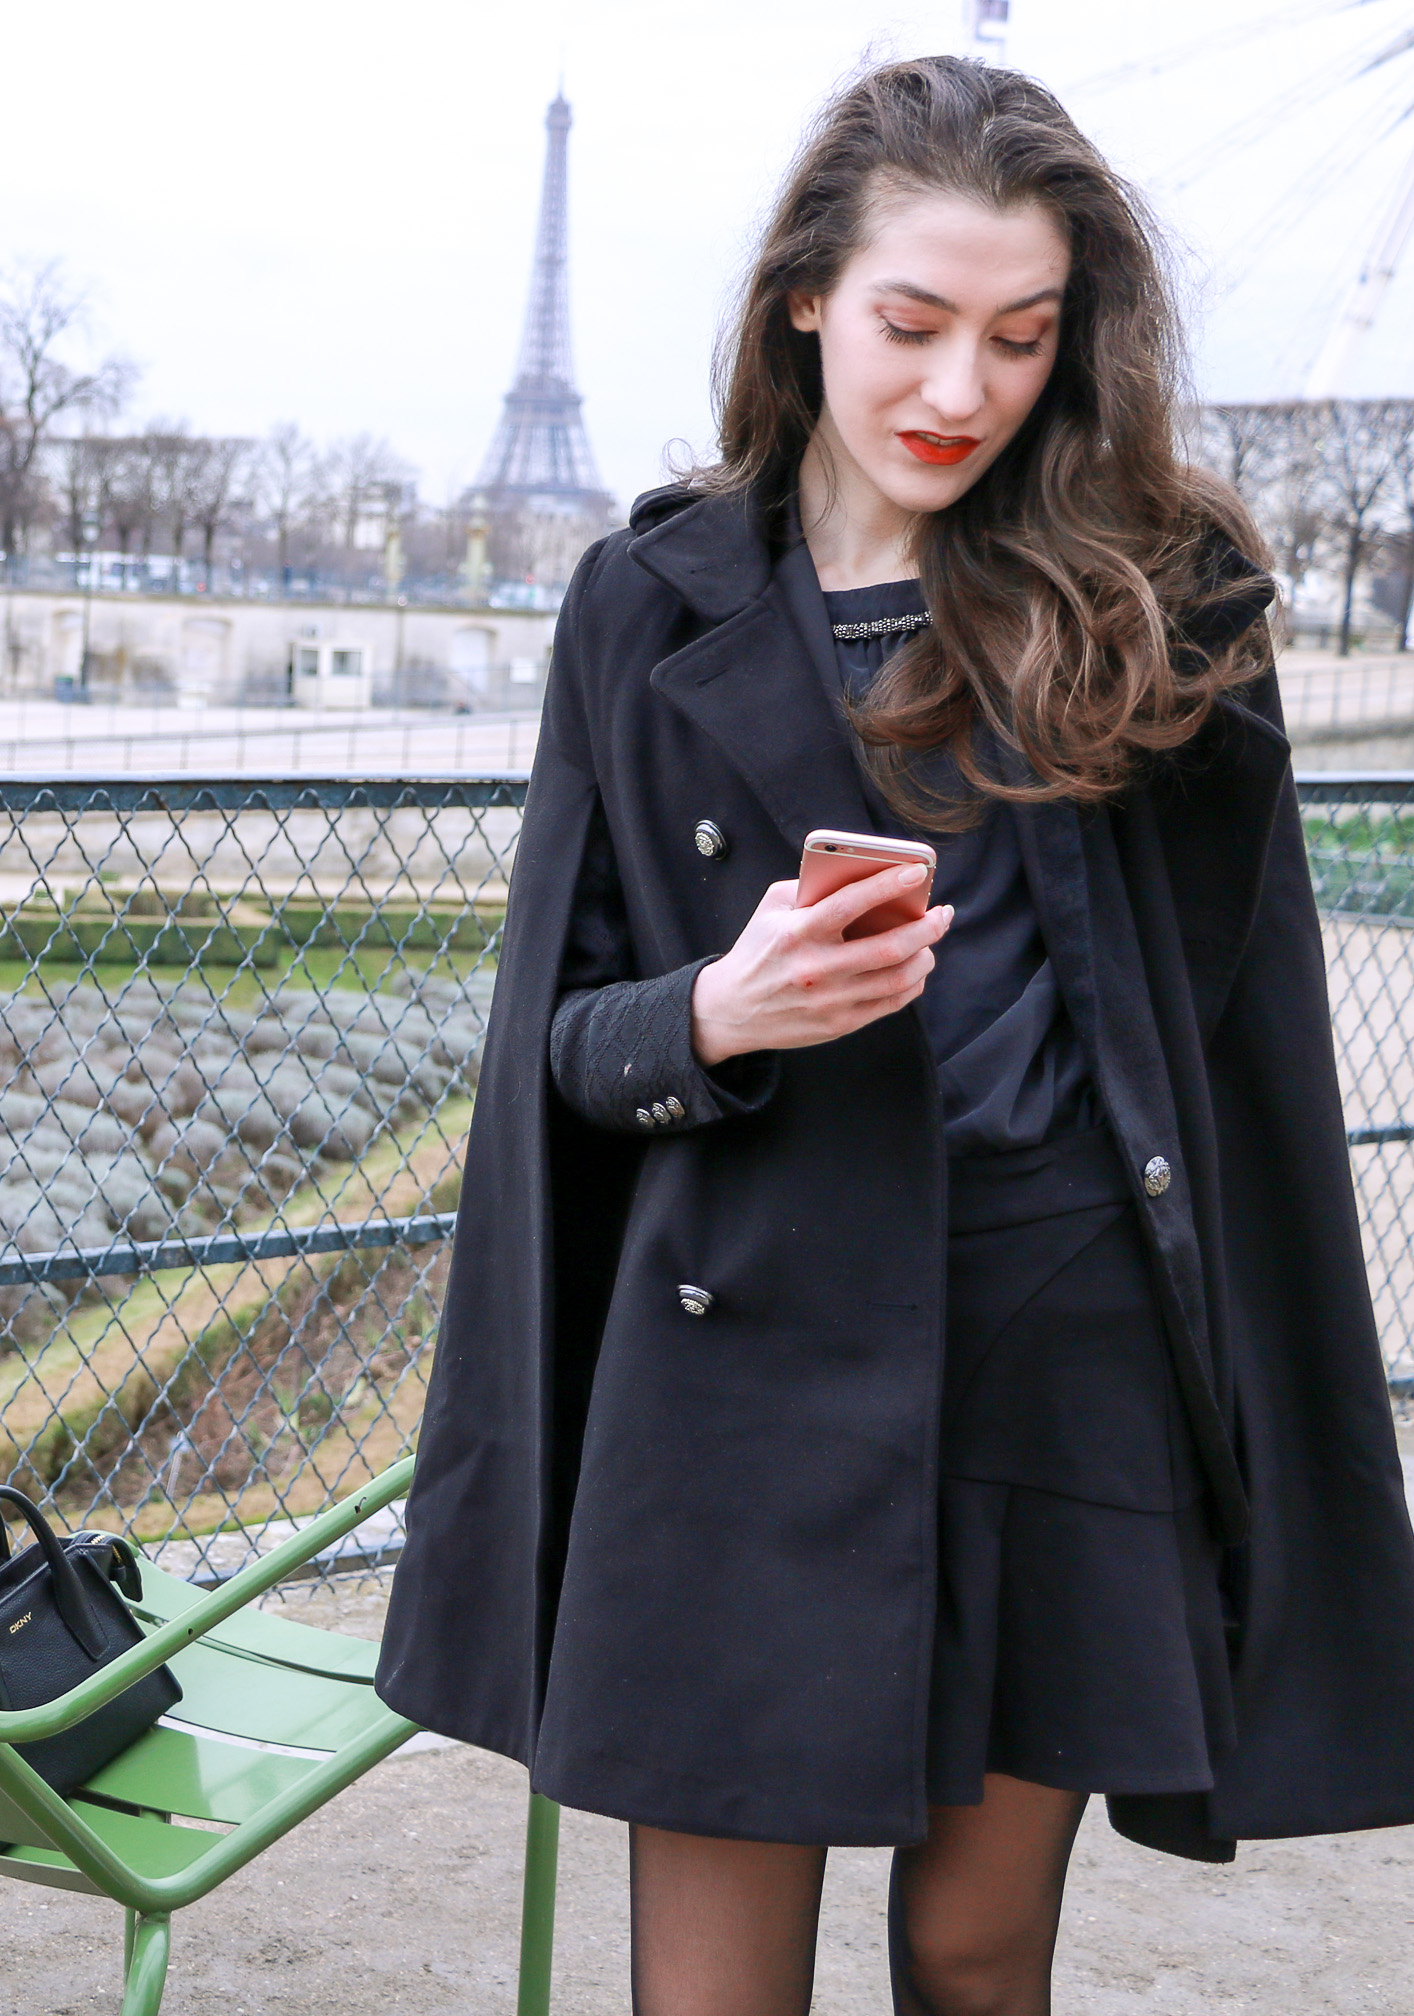 Fashion Blogger Veronika Lipar of Brunette from Wall Street sharing how to style chic black ruffled mini skirt, sexy black tights and white sneakers like a French